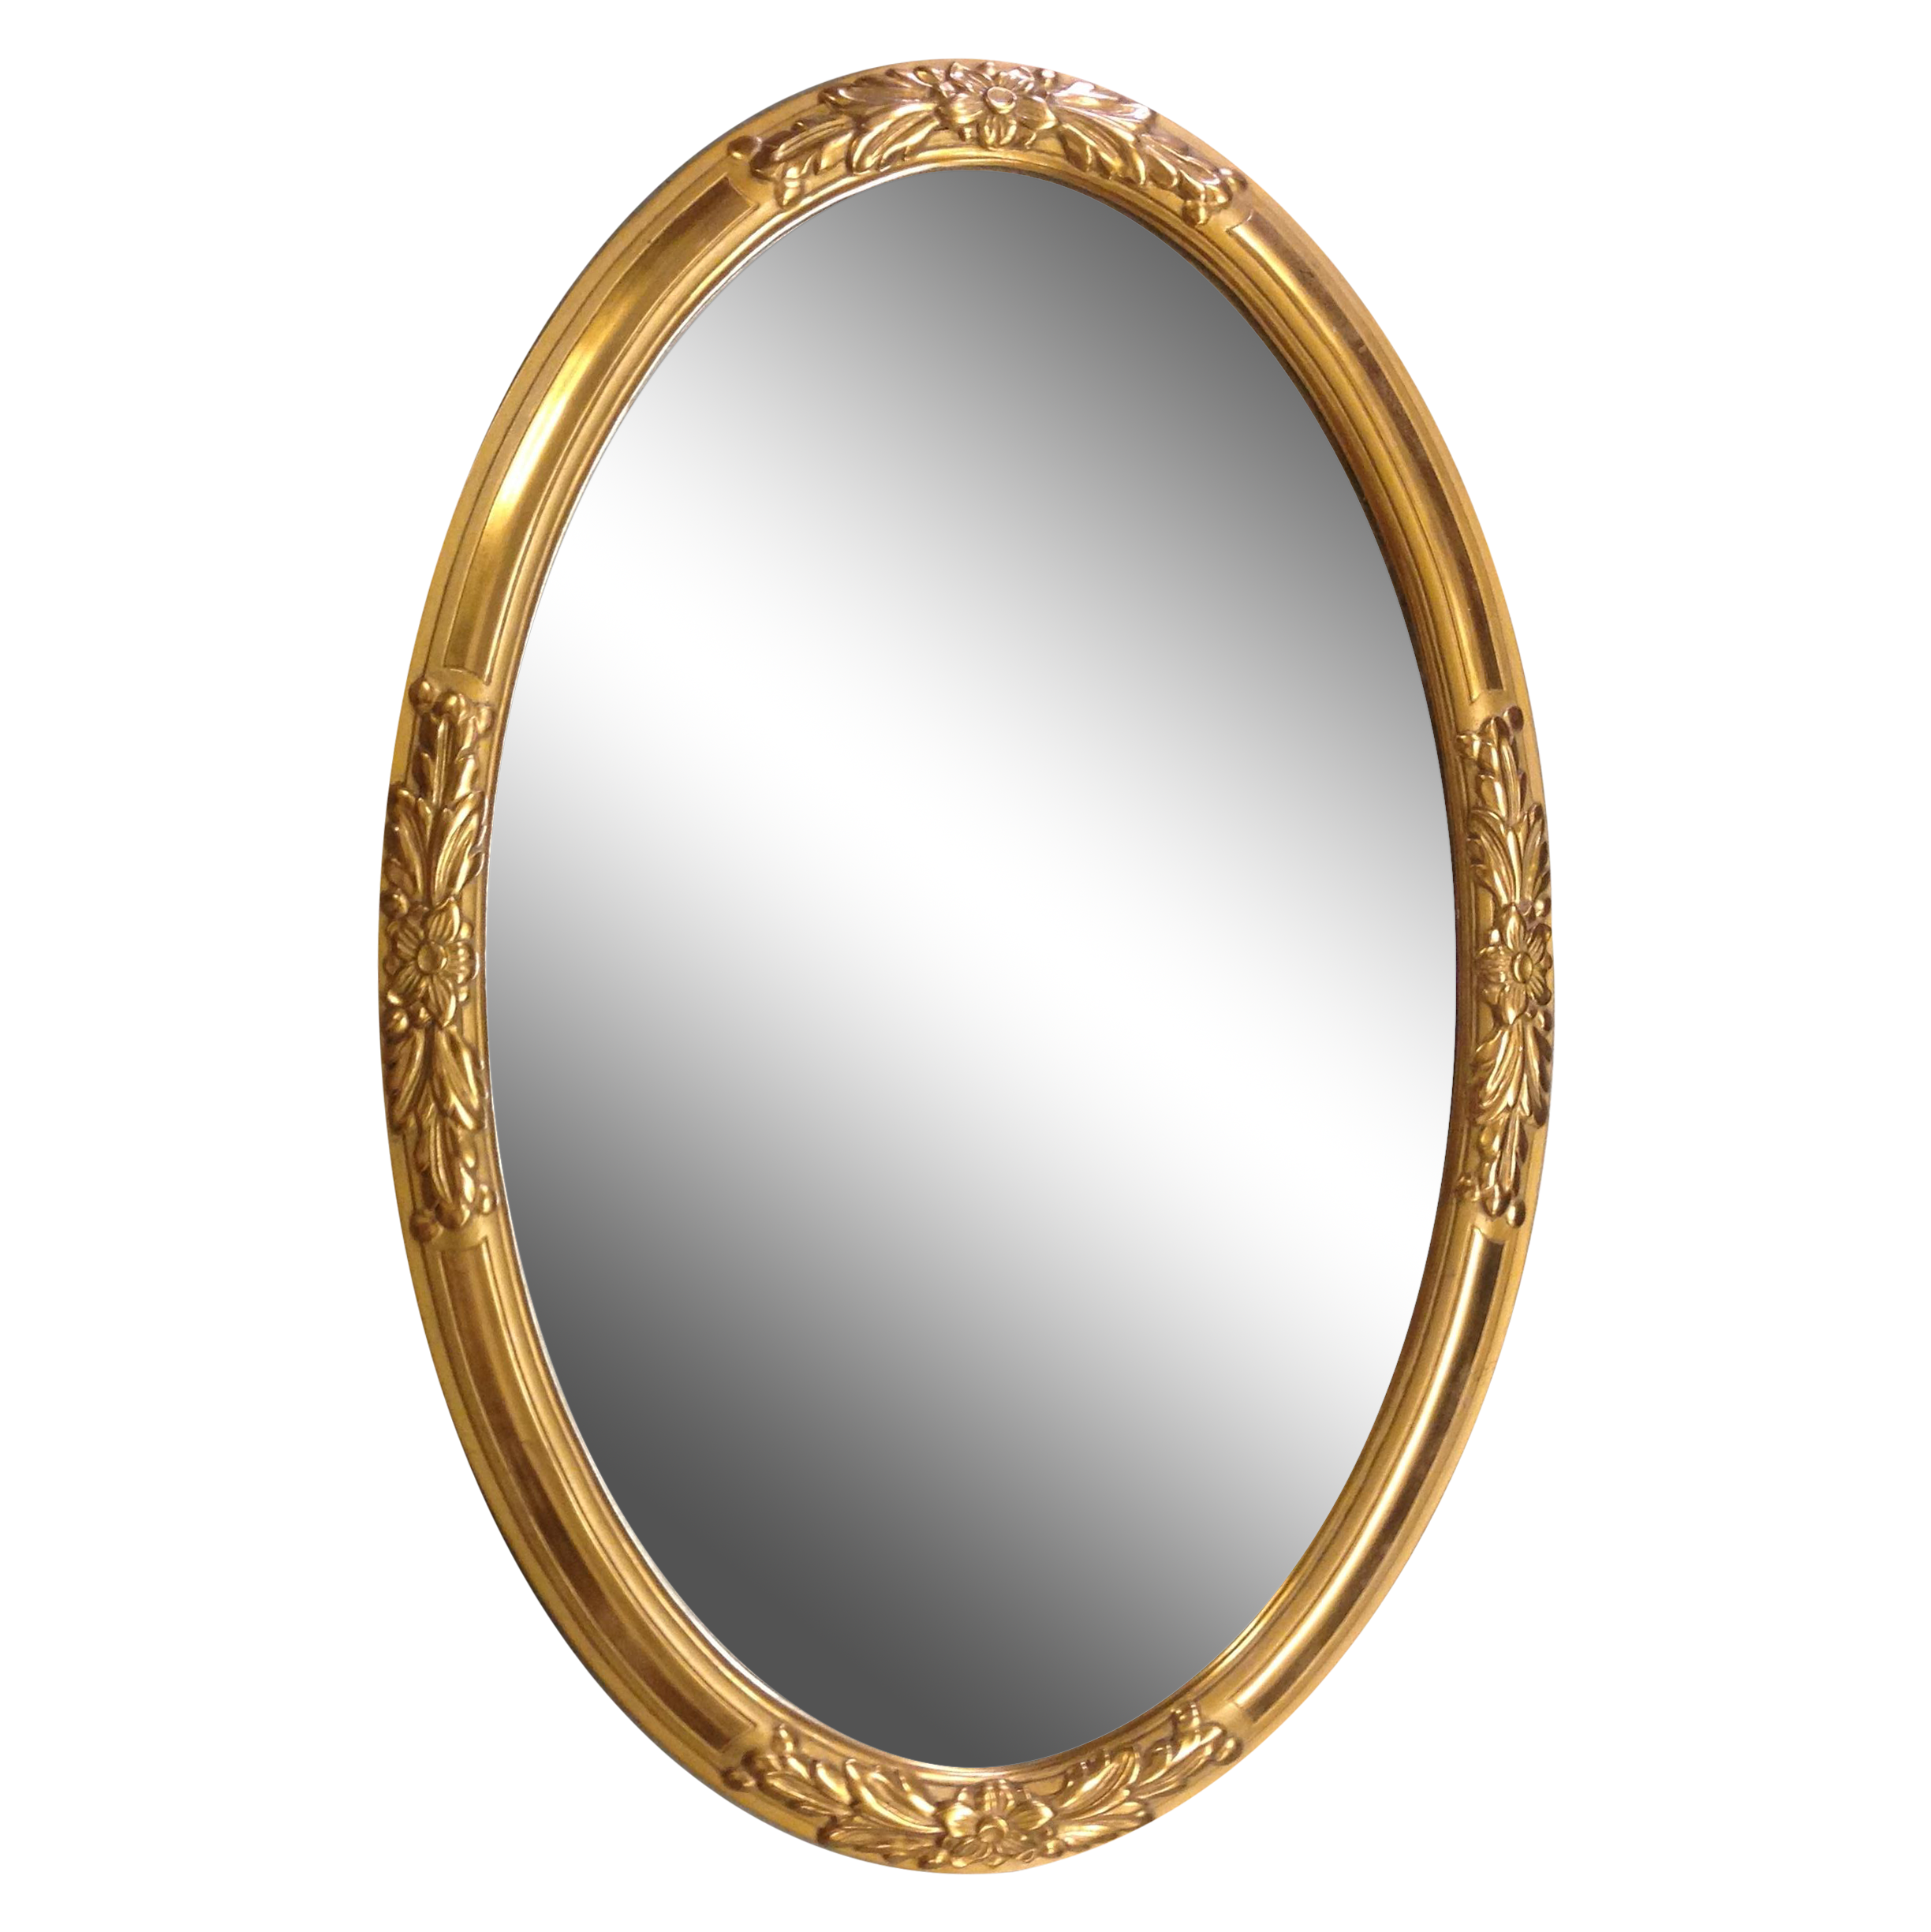 1930s French Gold Wood Framed Oval Mirror